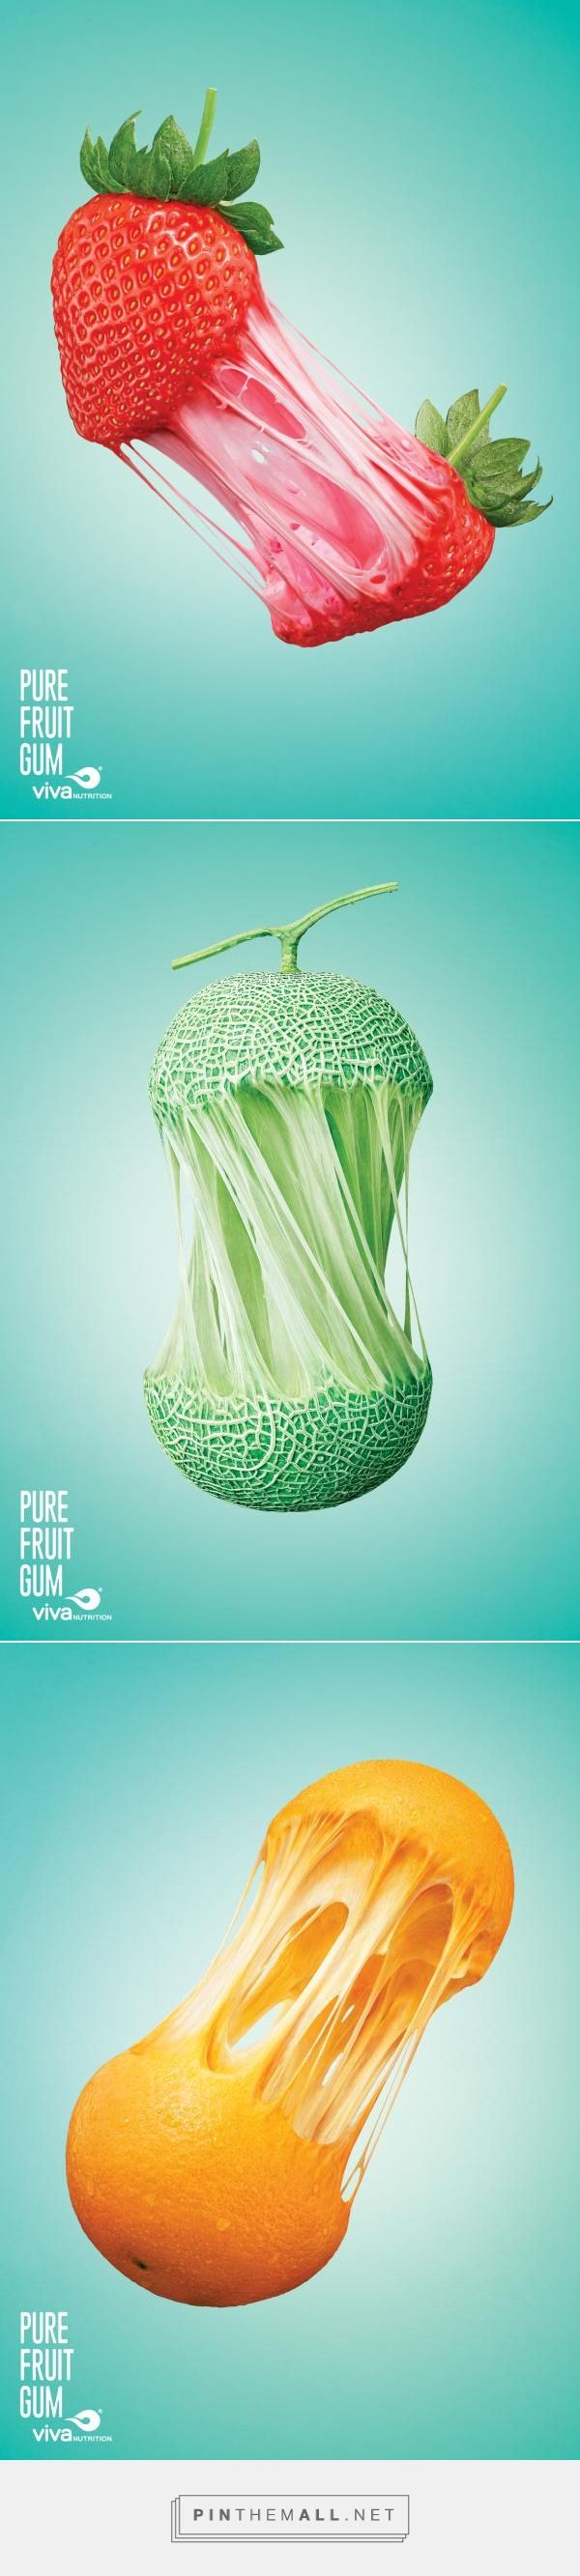 Viva Nutrition: Pure Fruit Gum Print Ads - great ads - created via https://pinthemall.net